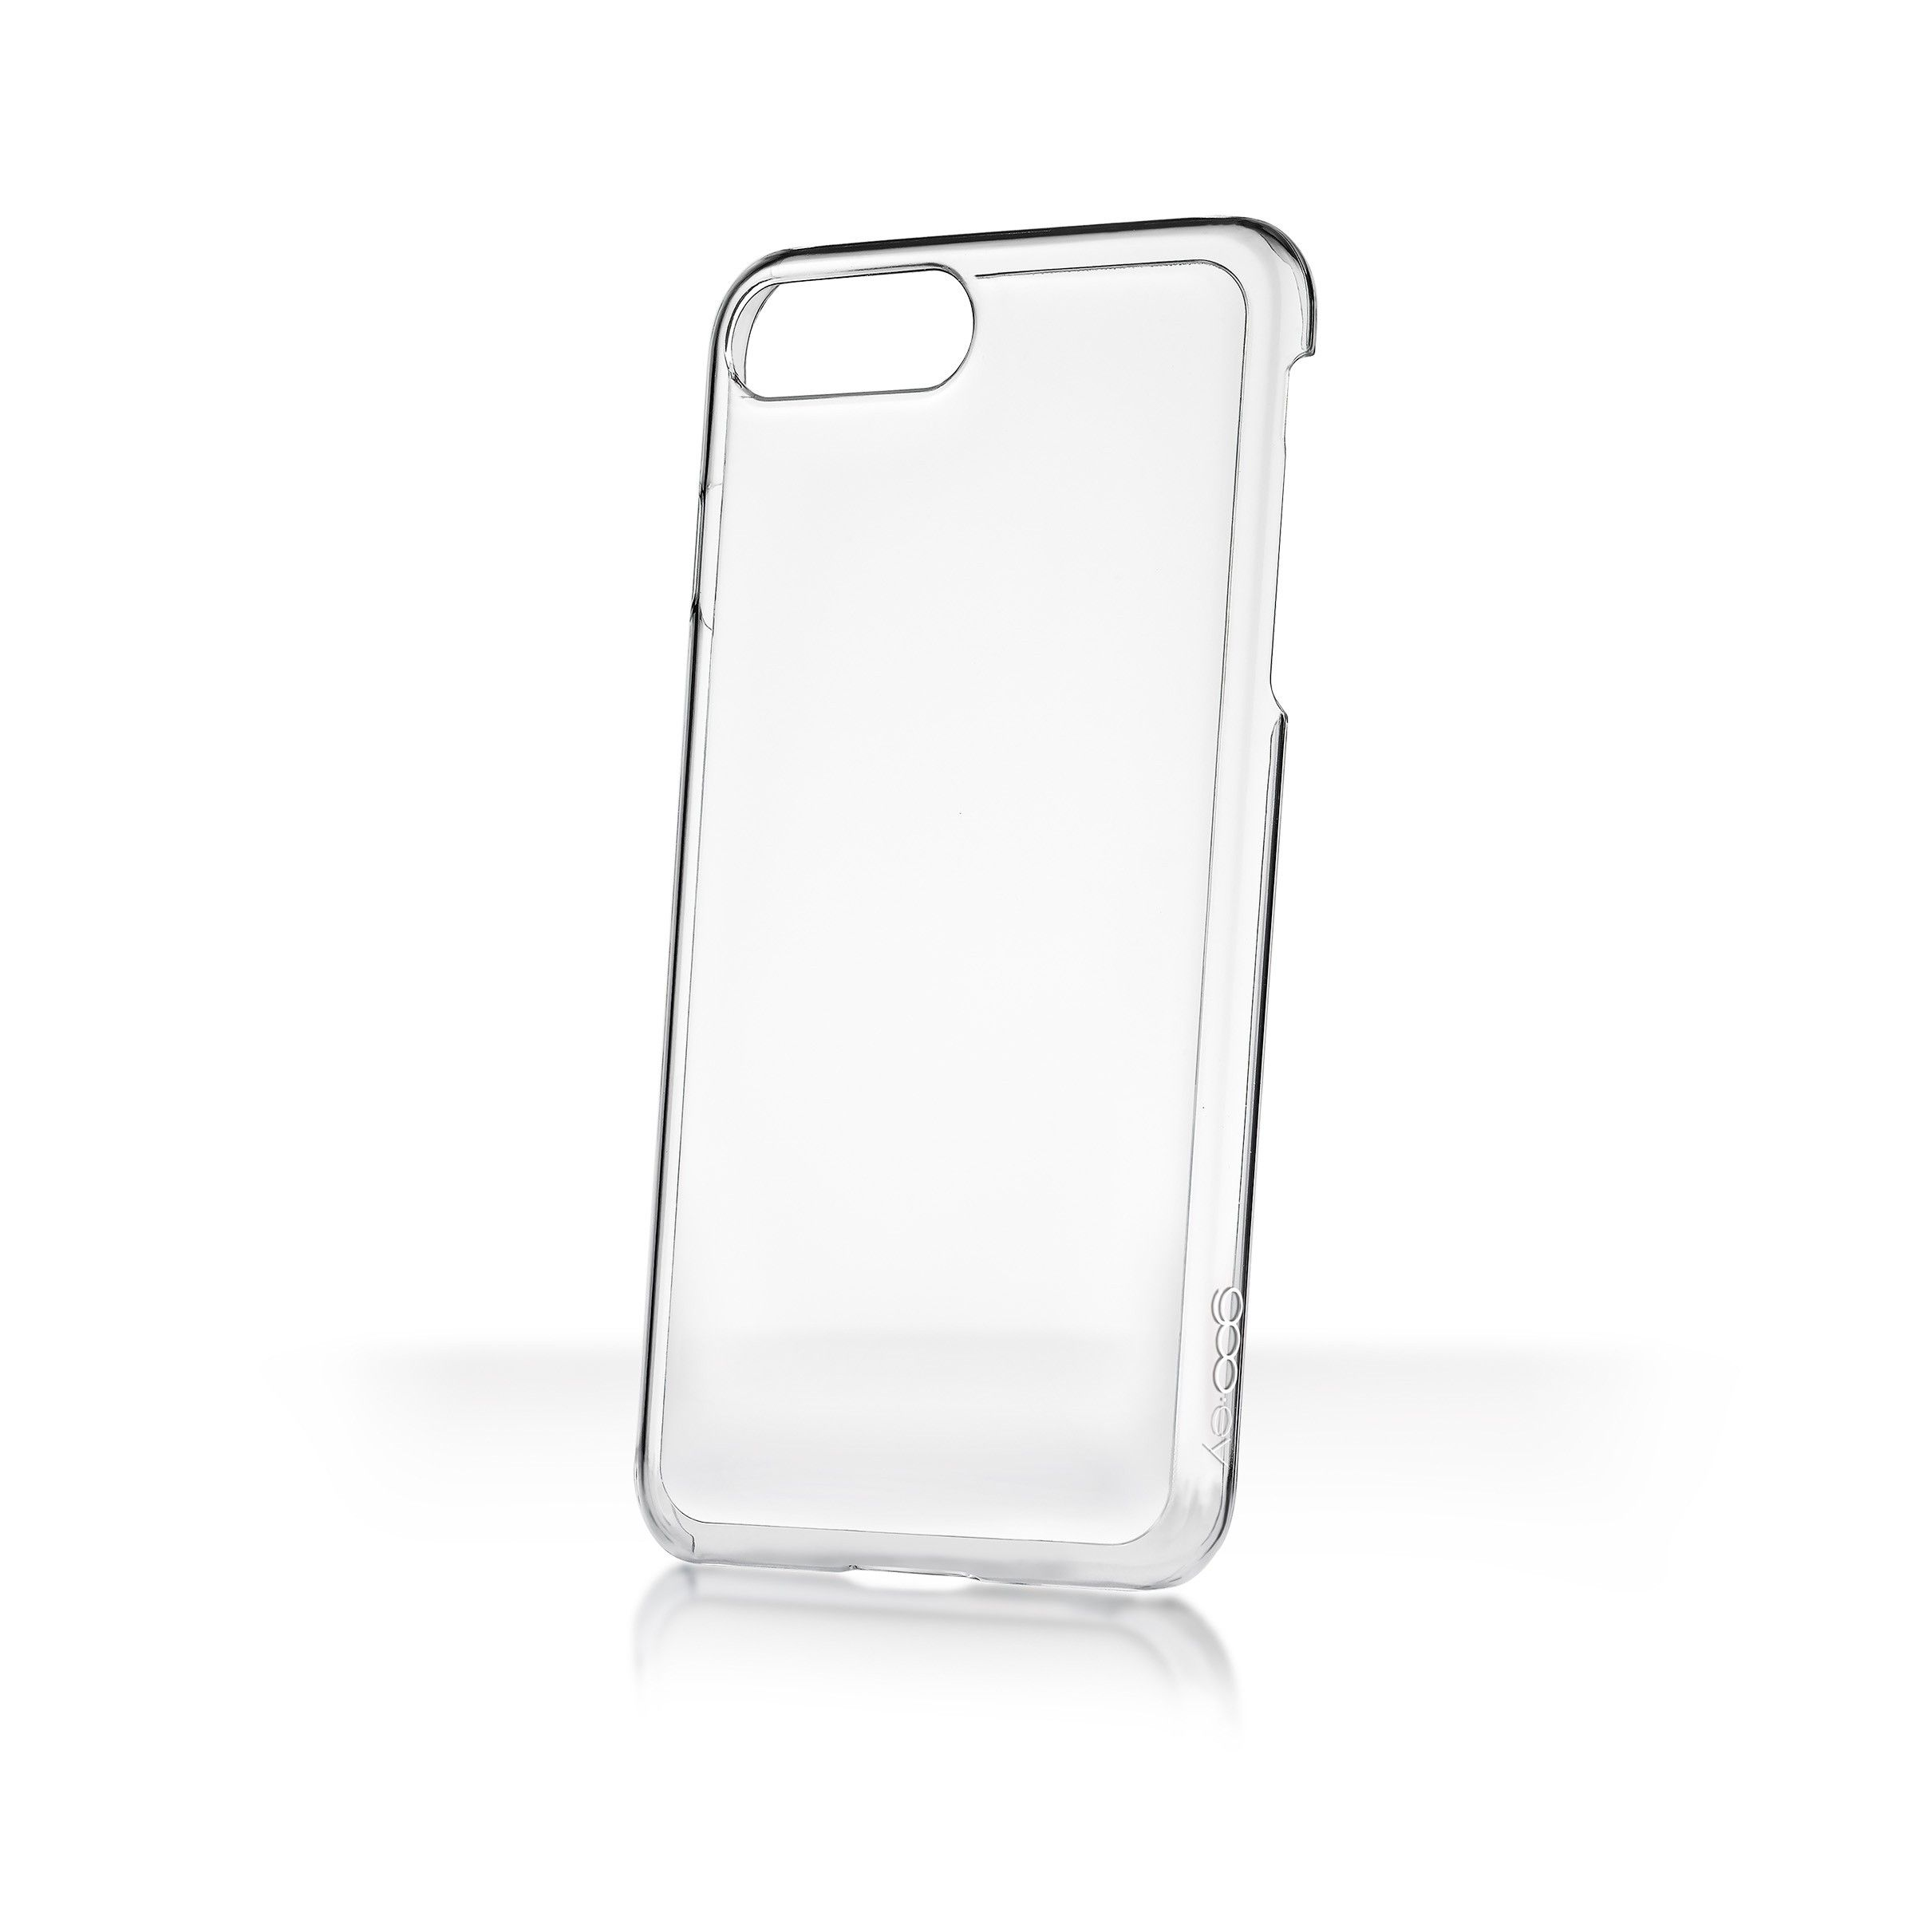 2d43bf73325 Apple iPhone 8/7/6 Plus Case - Clear   To Buy   Instagram, apple ...